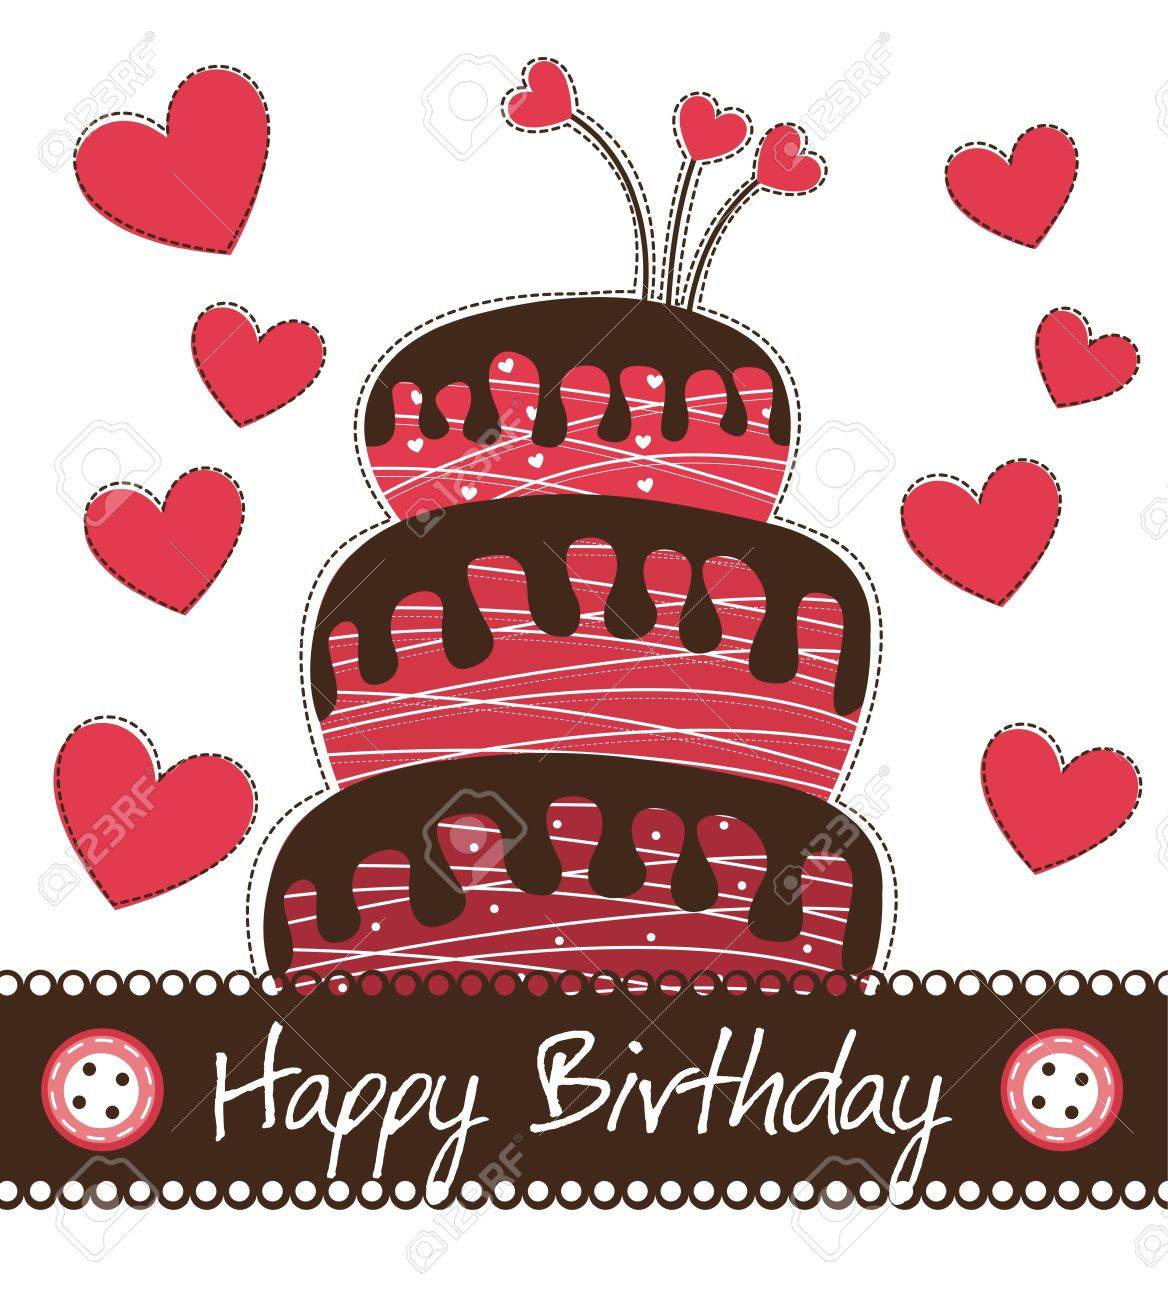 cute cake with hearts over white background, birthday. Stock Vector - 14038962